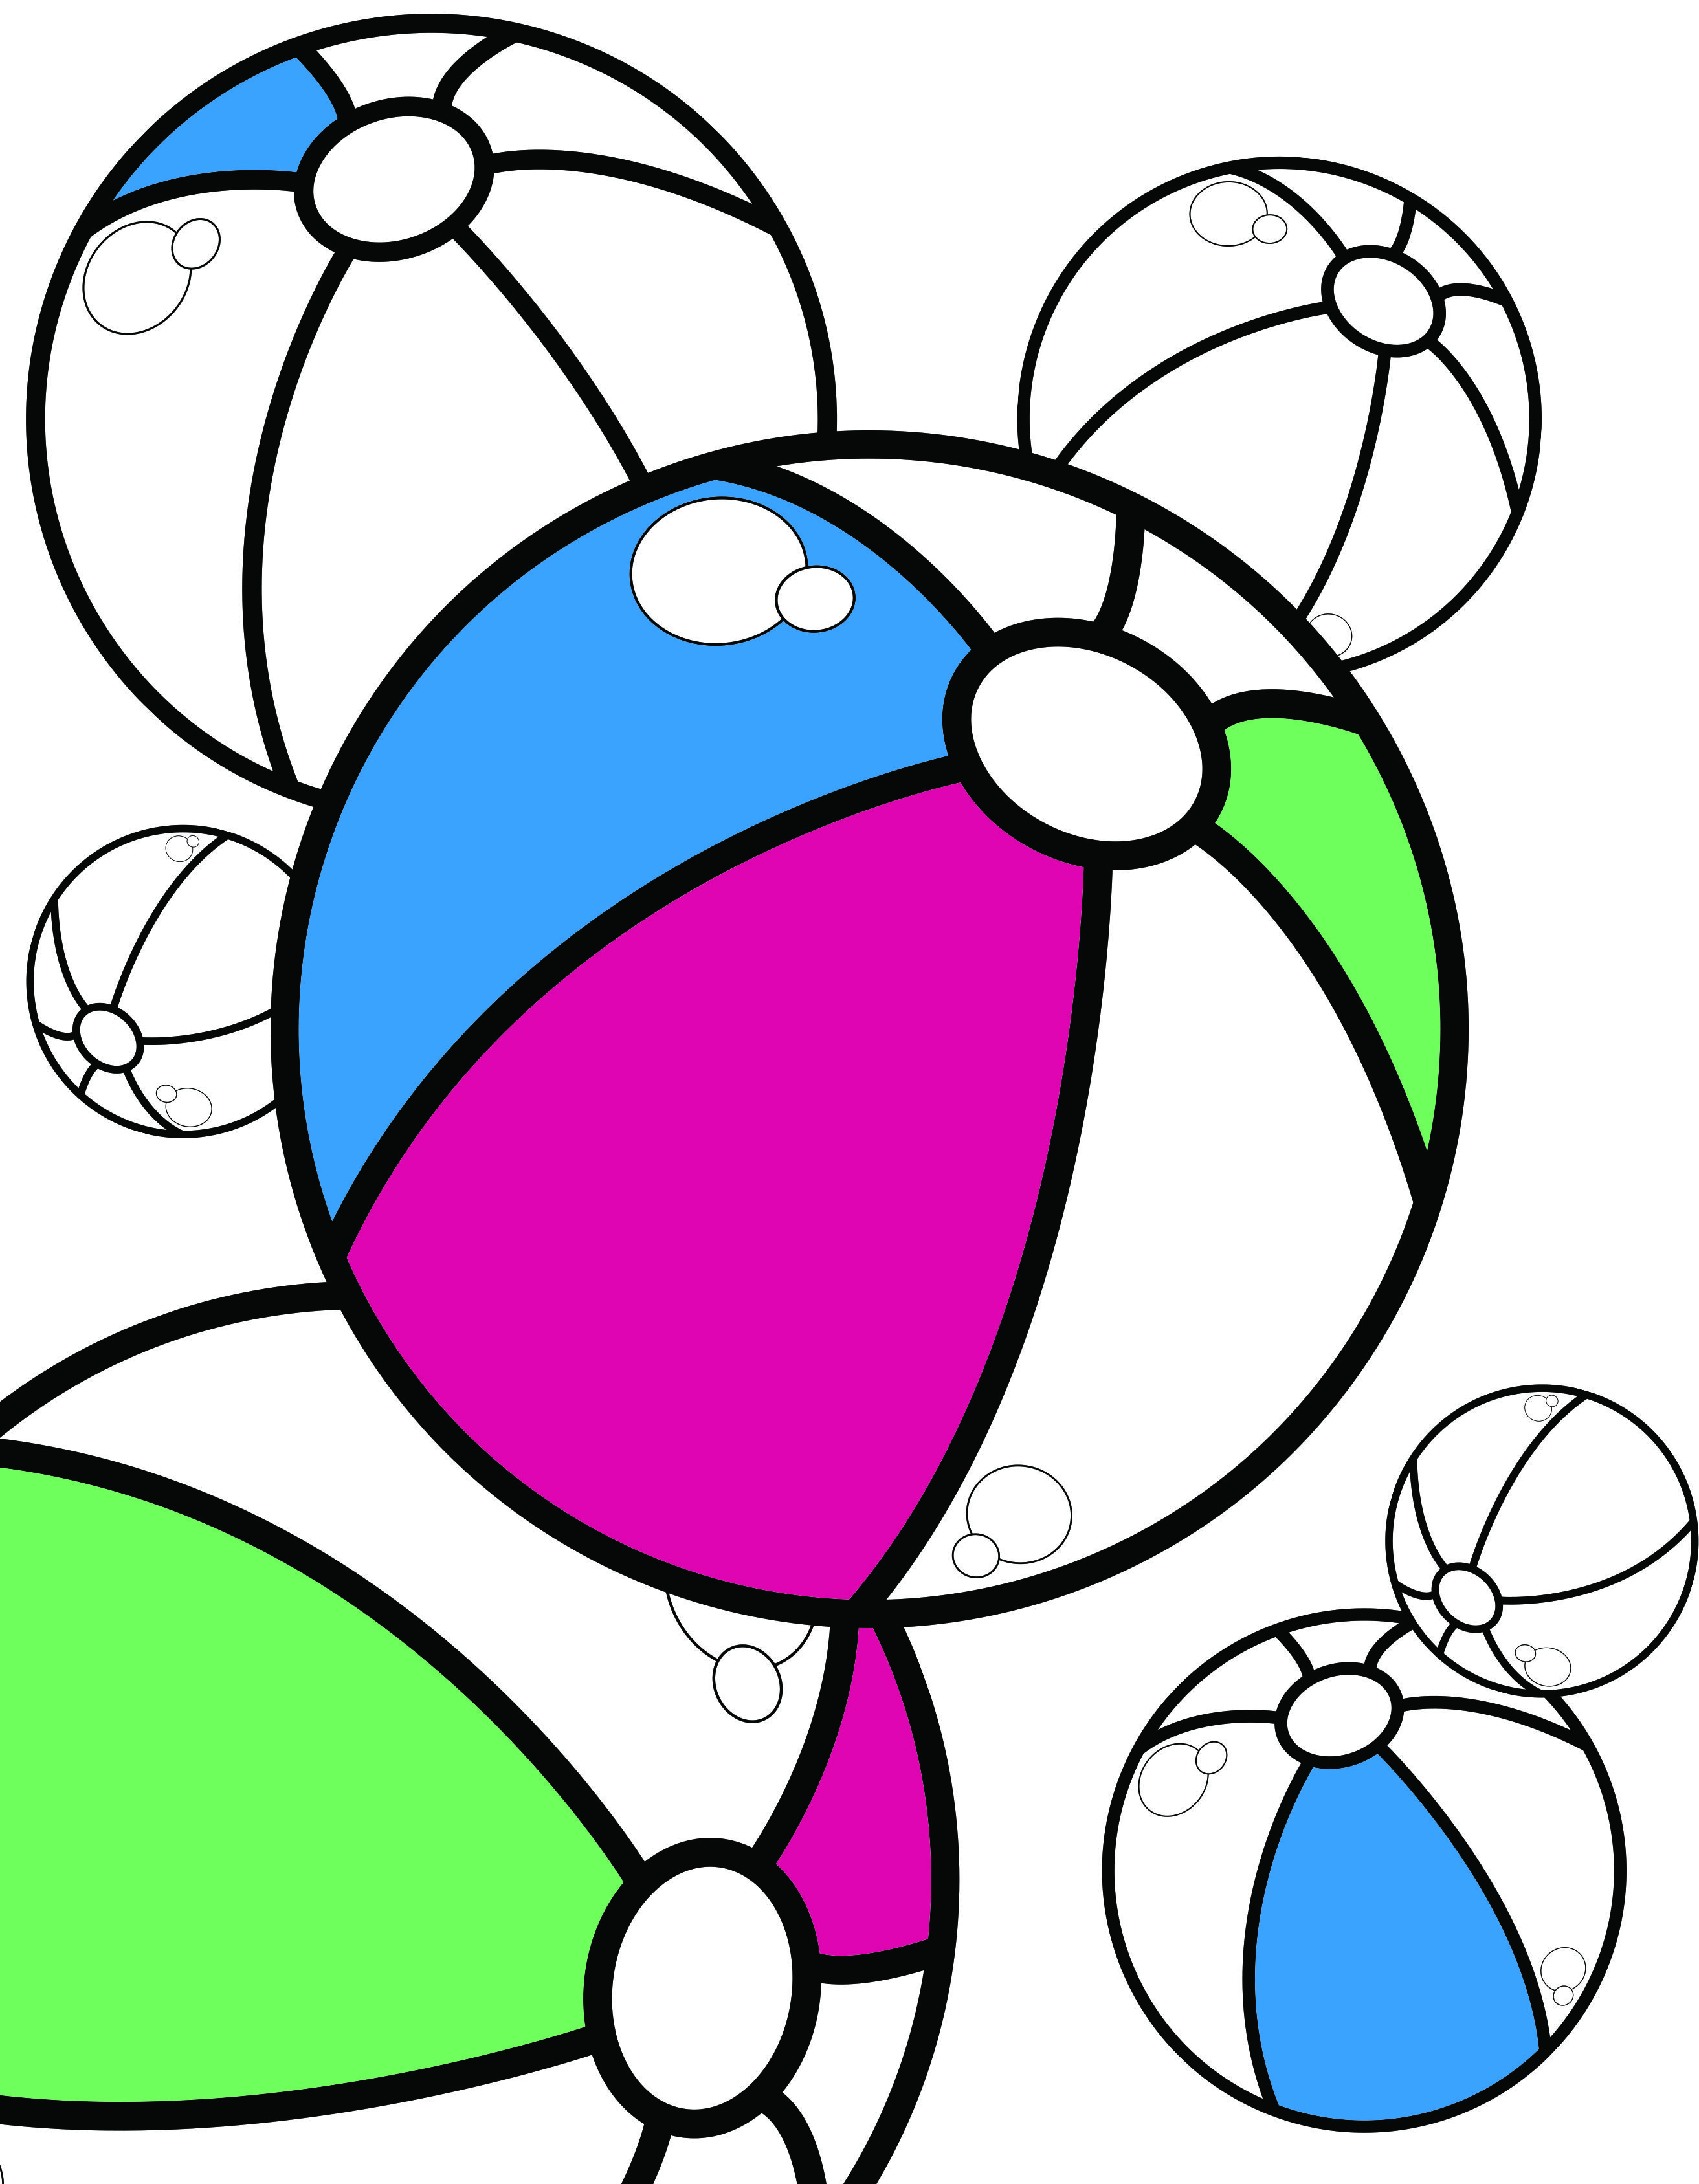 Beach Ball Coloring Page Coloring Page Coloring Books Coloring Pages Illustration